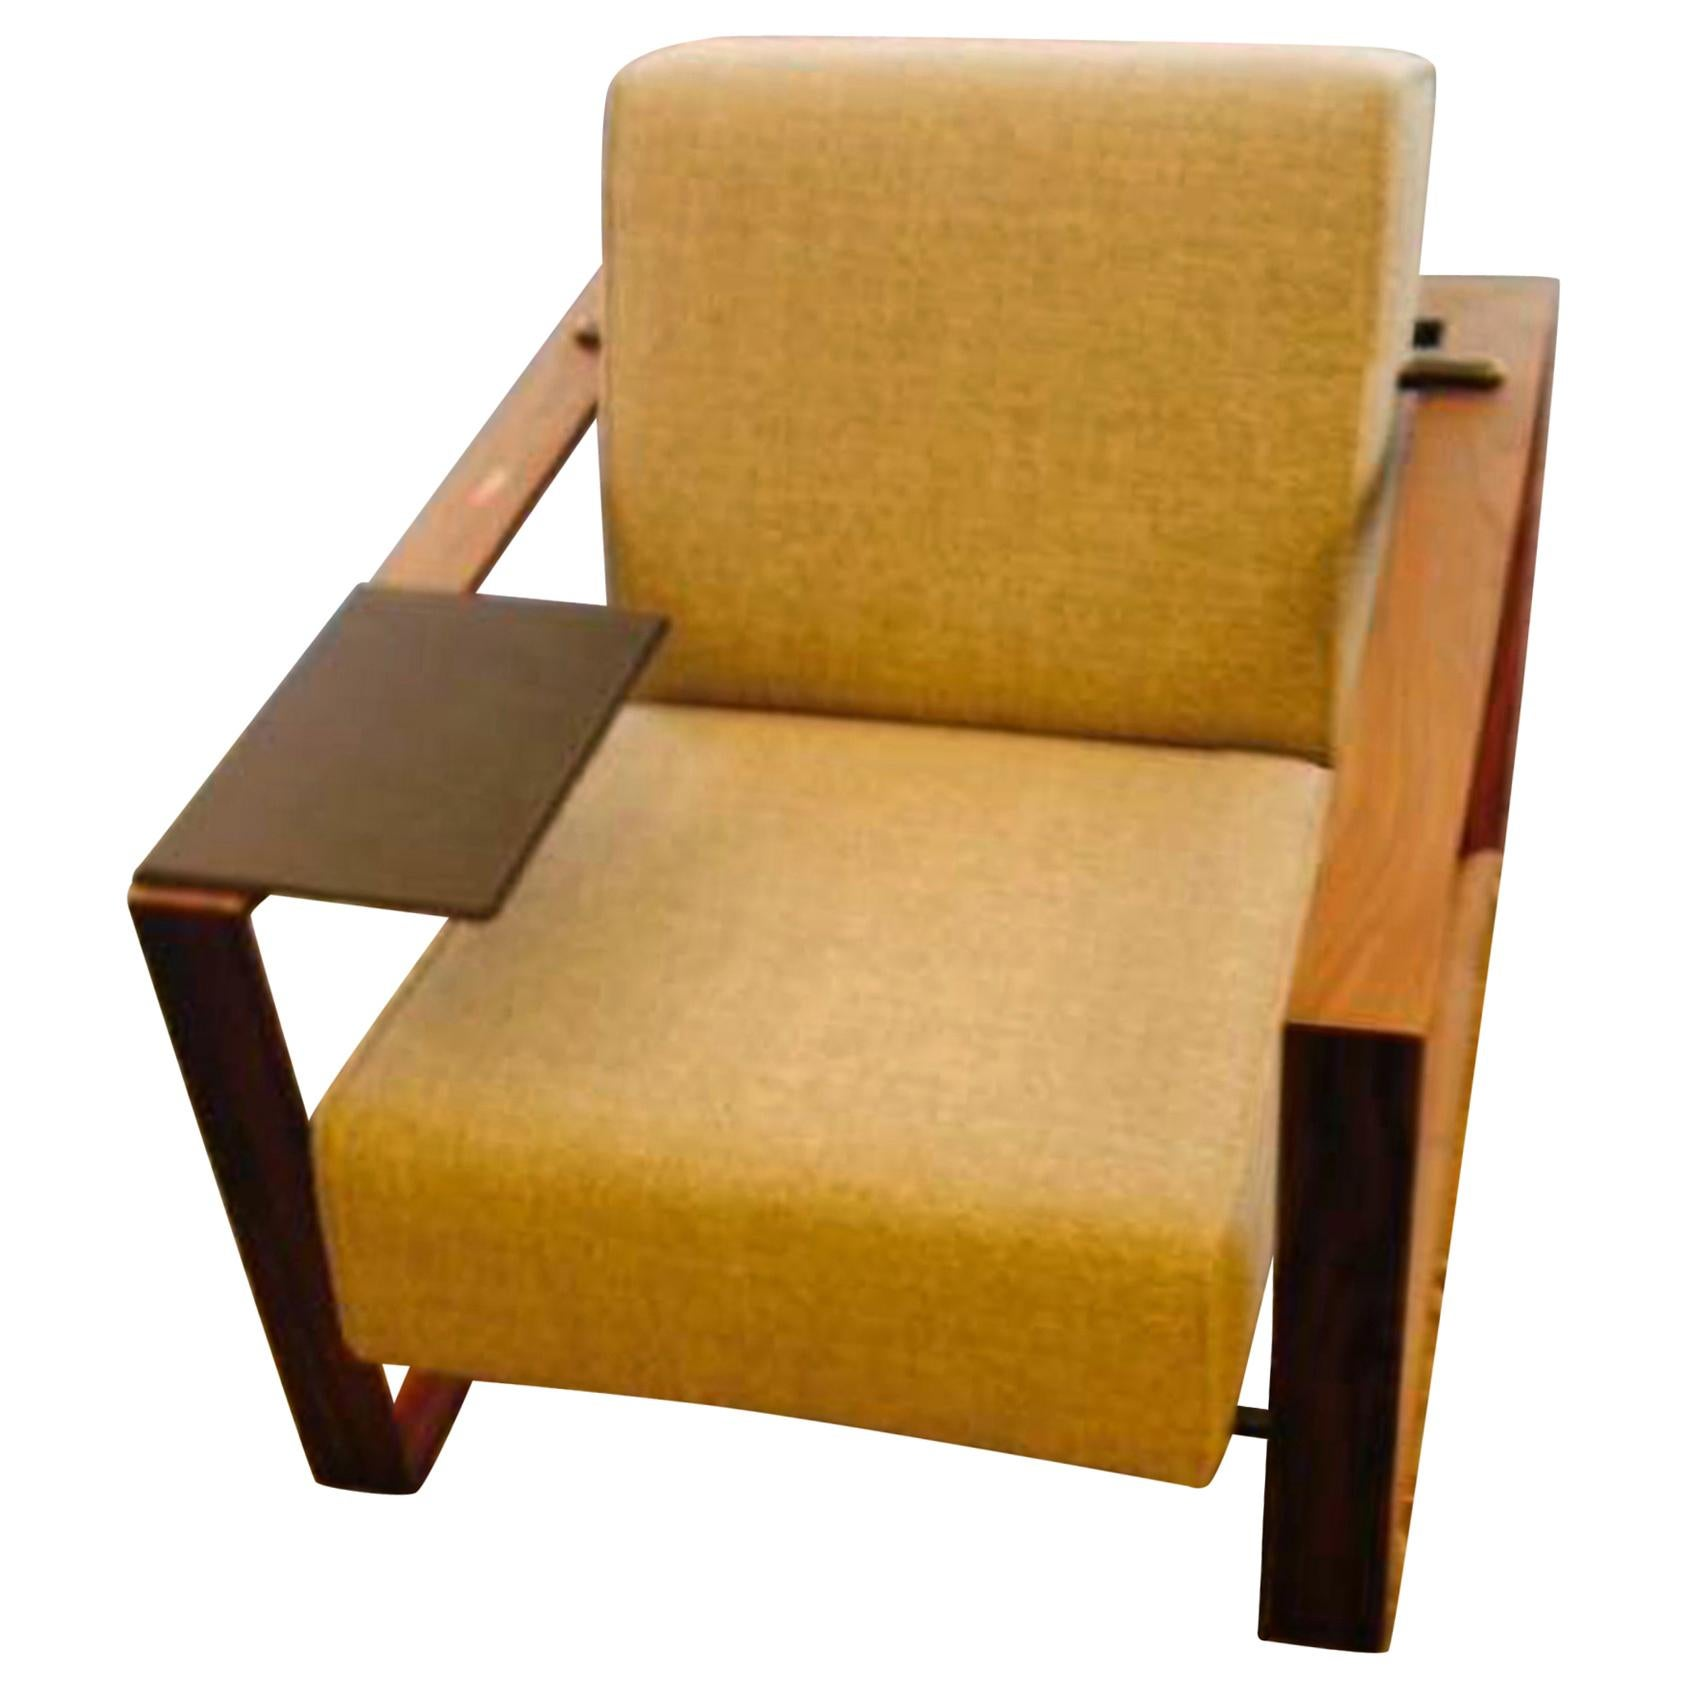 Montis Madonna Fauteuils.Montis Lounge Chairs 19 For Sale At 1stdibs